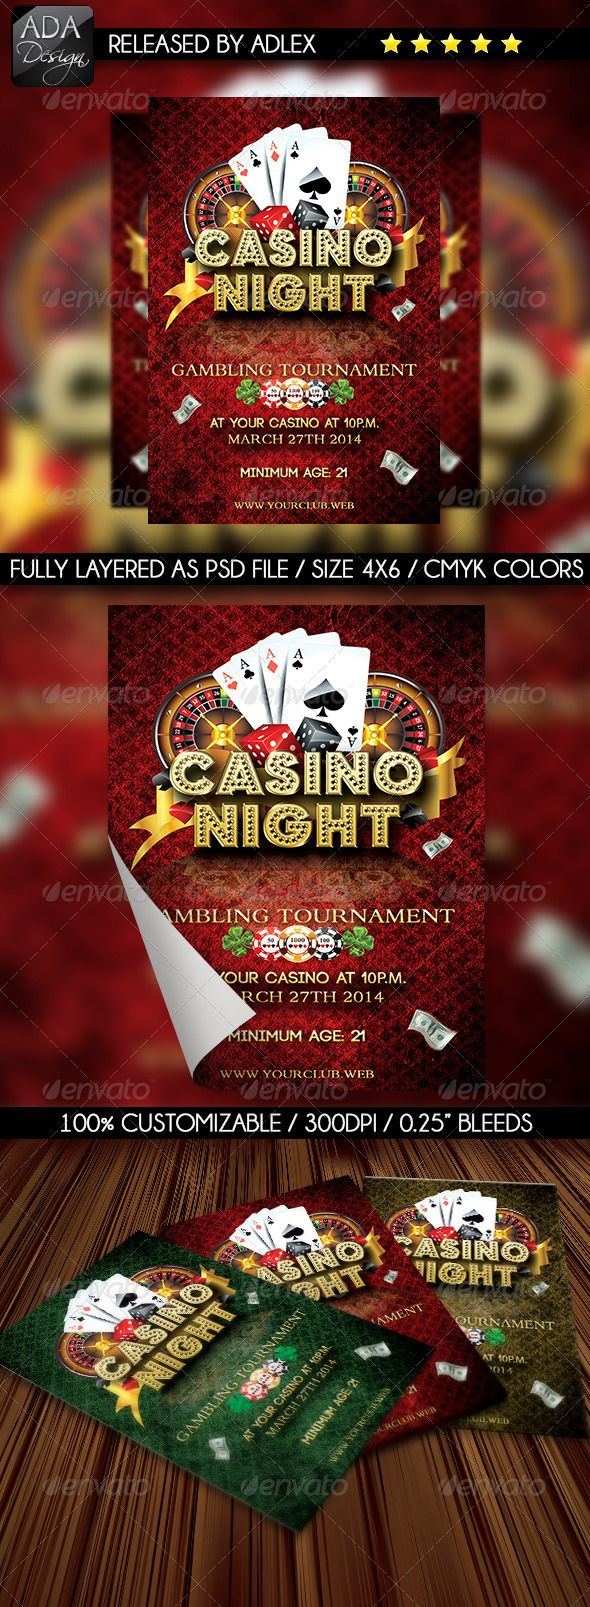 Now, you can amaze clients with this impressive party Casino Night Flyer Template, coming with a special flyer.